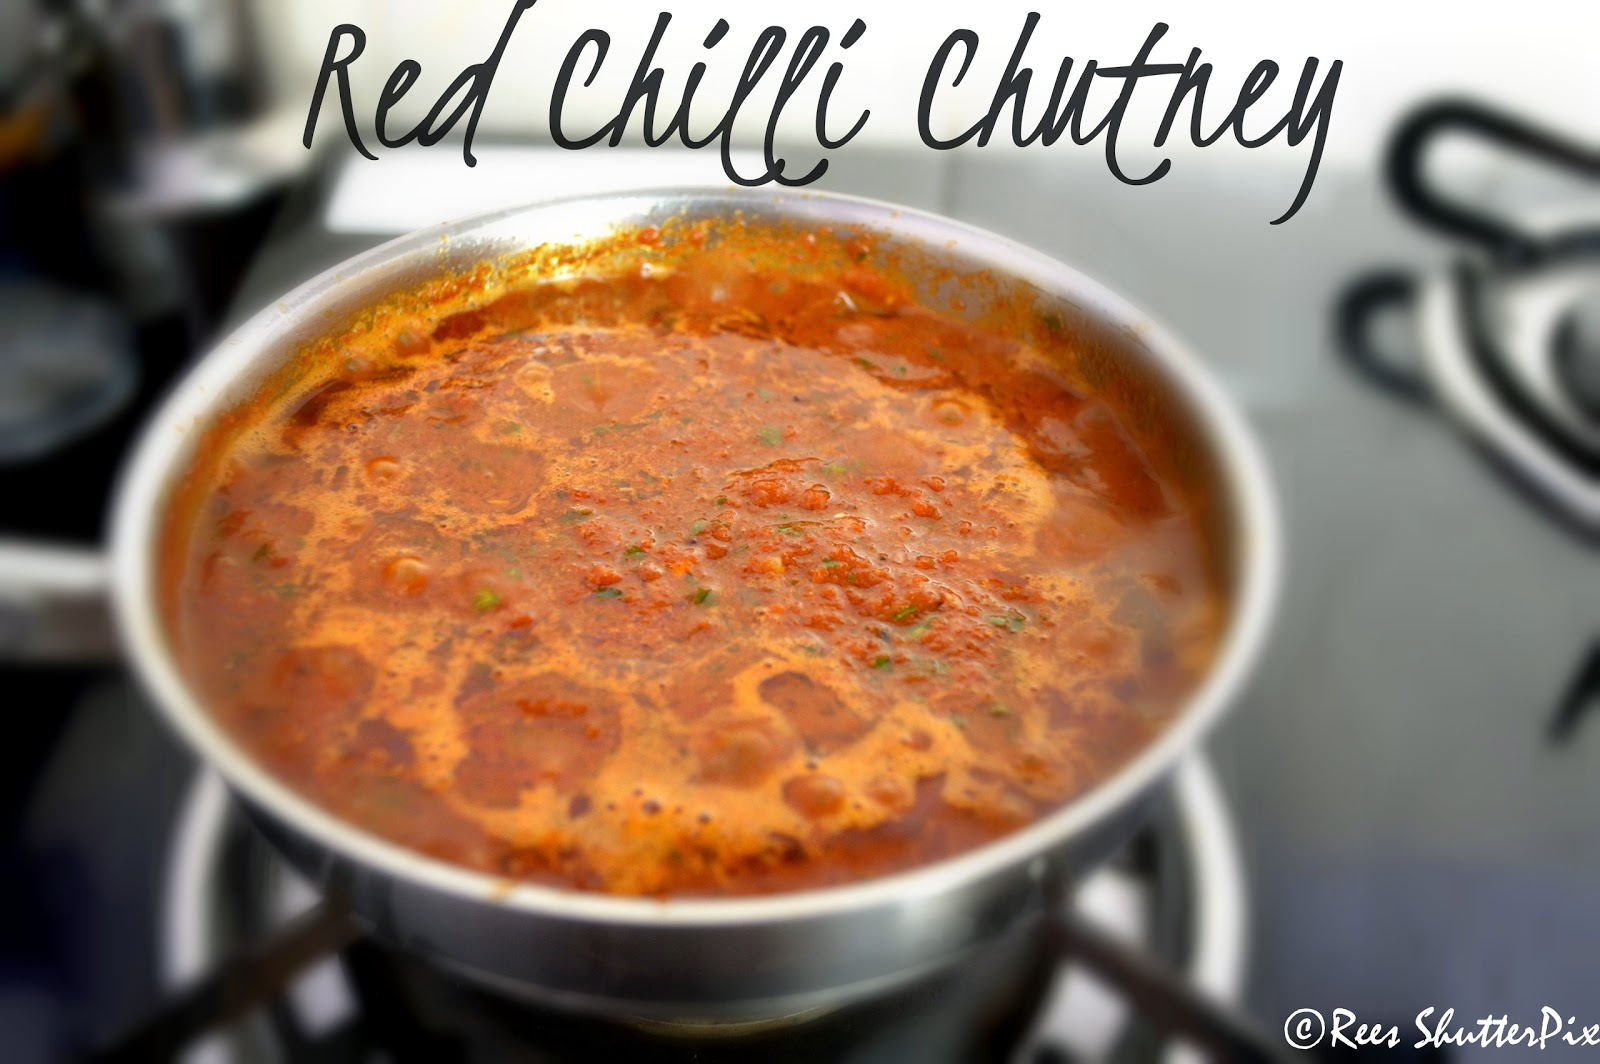 ... . In this chill morning, I wish to eat this spicy chutney with idli:P